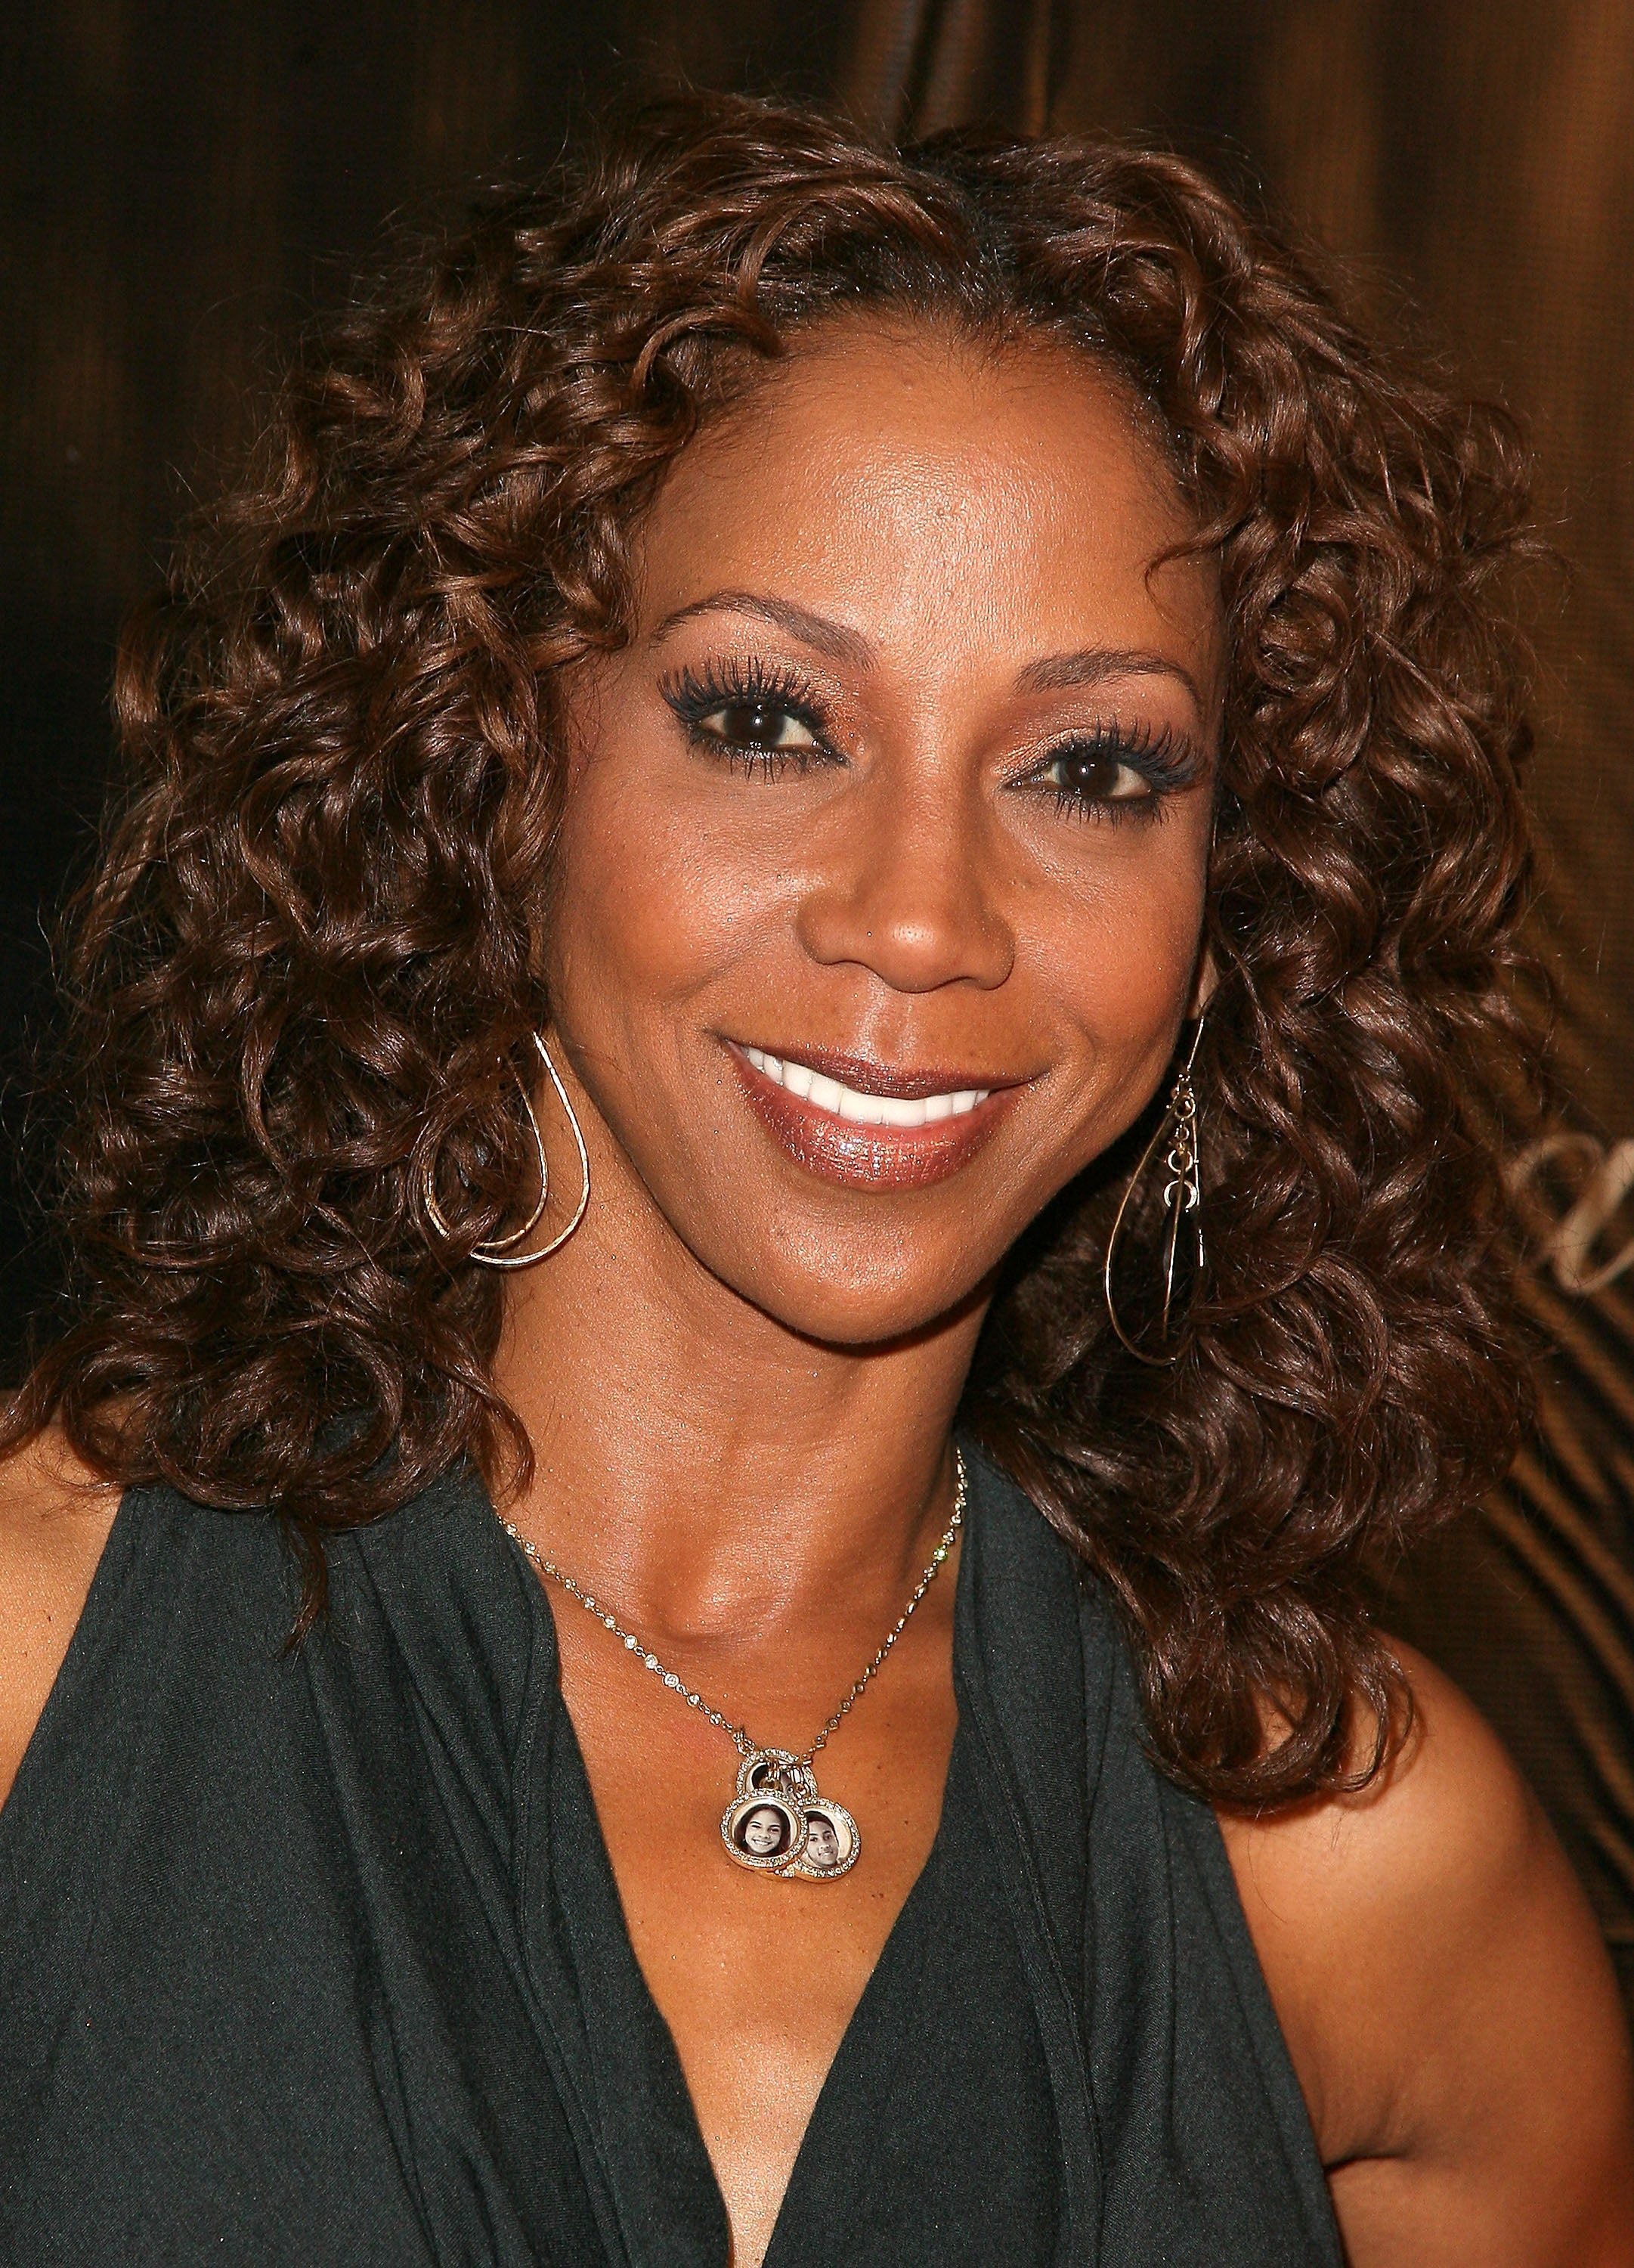 Holly Robinson Peete Will Not Return for Season 2 of 'The Talk'